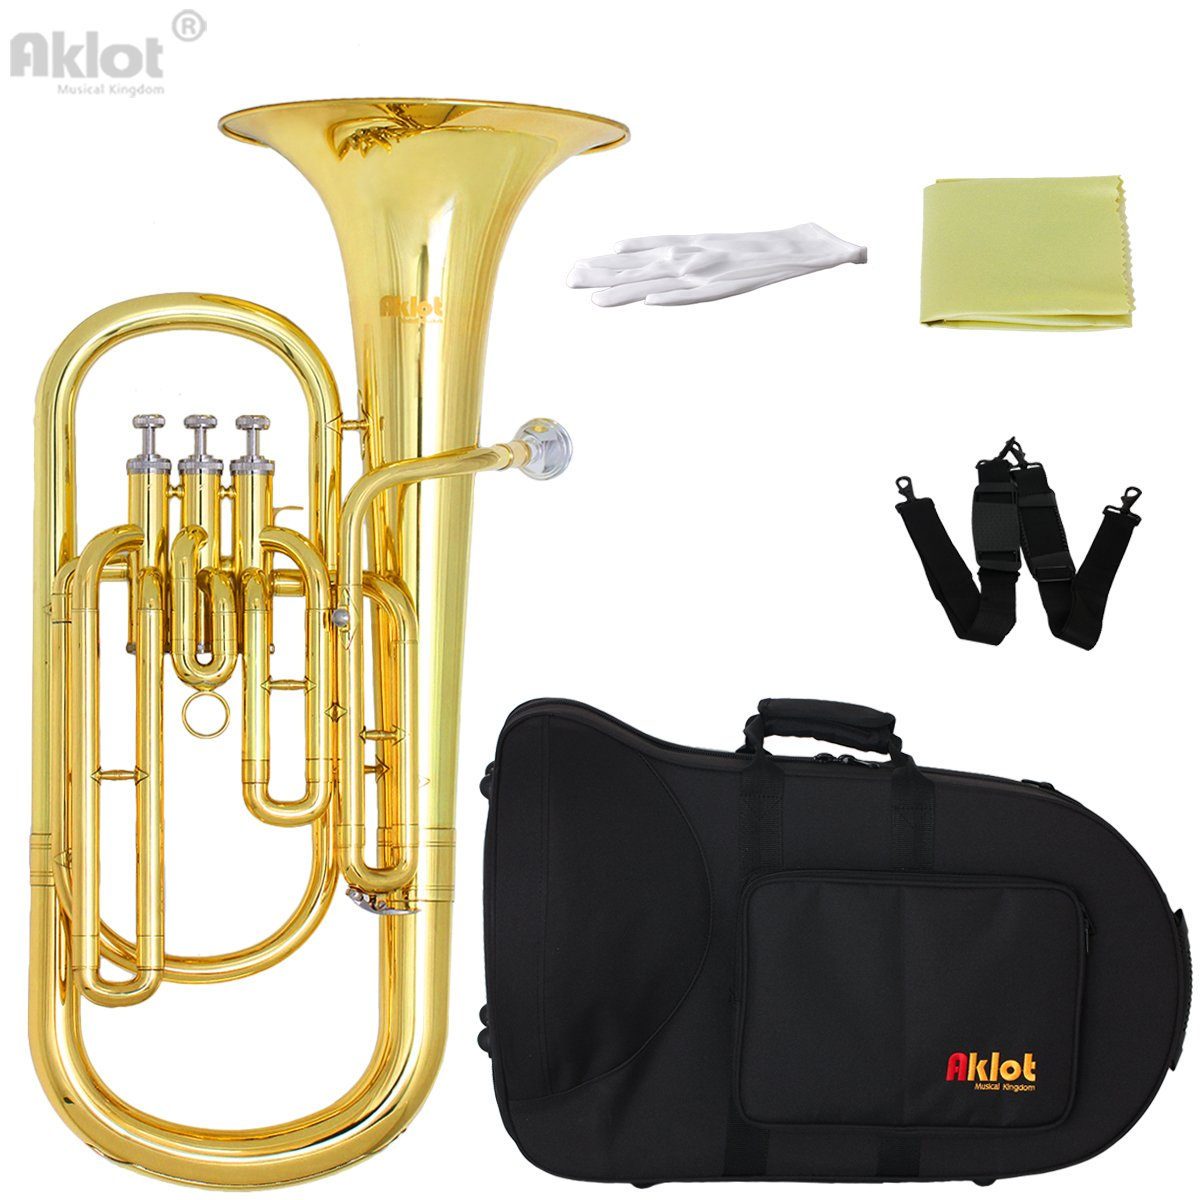 Aklot Bb Baritone Horn Silver Plated Mouthpiece Gold Lacquered Brass Body Stainless Steel Valves with Case Ltd